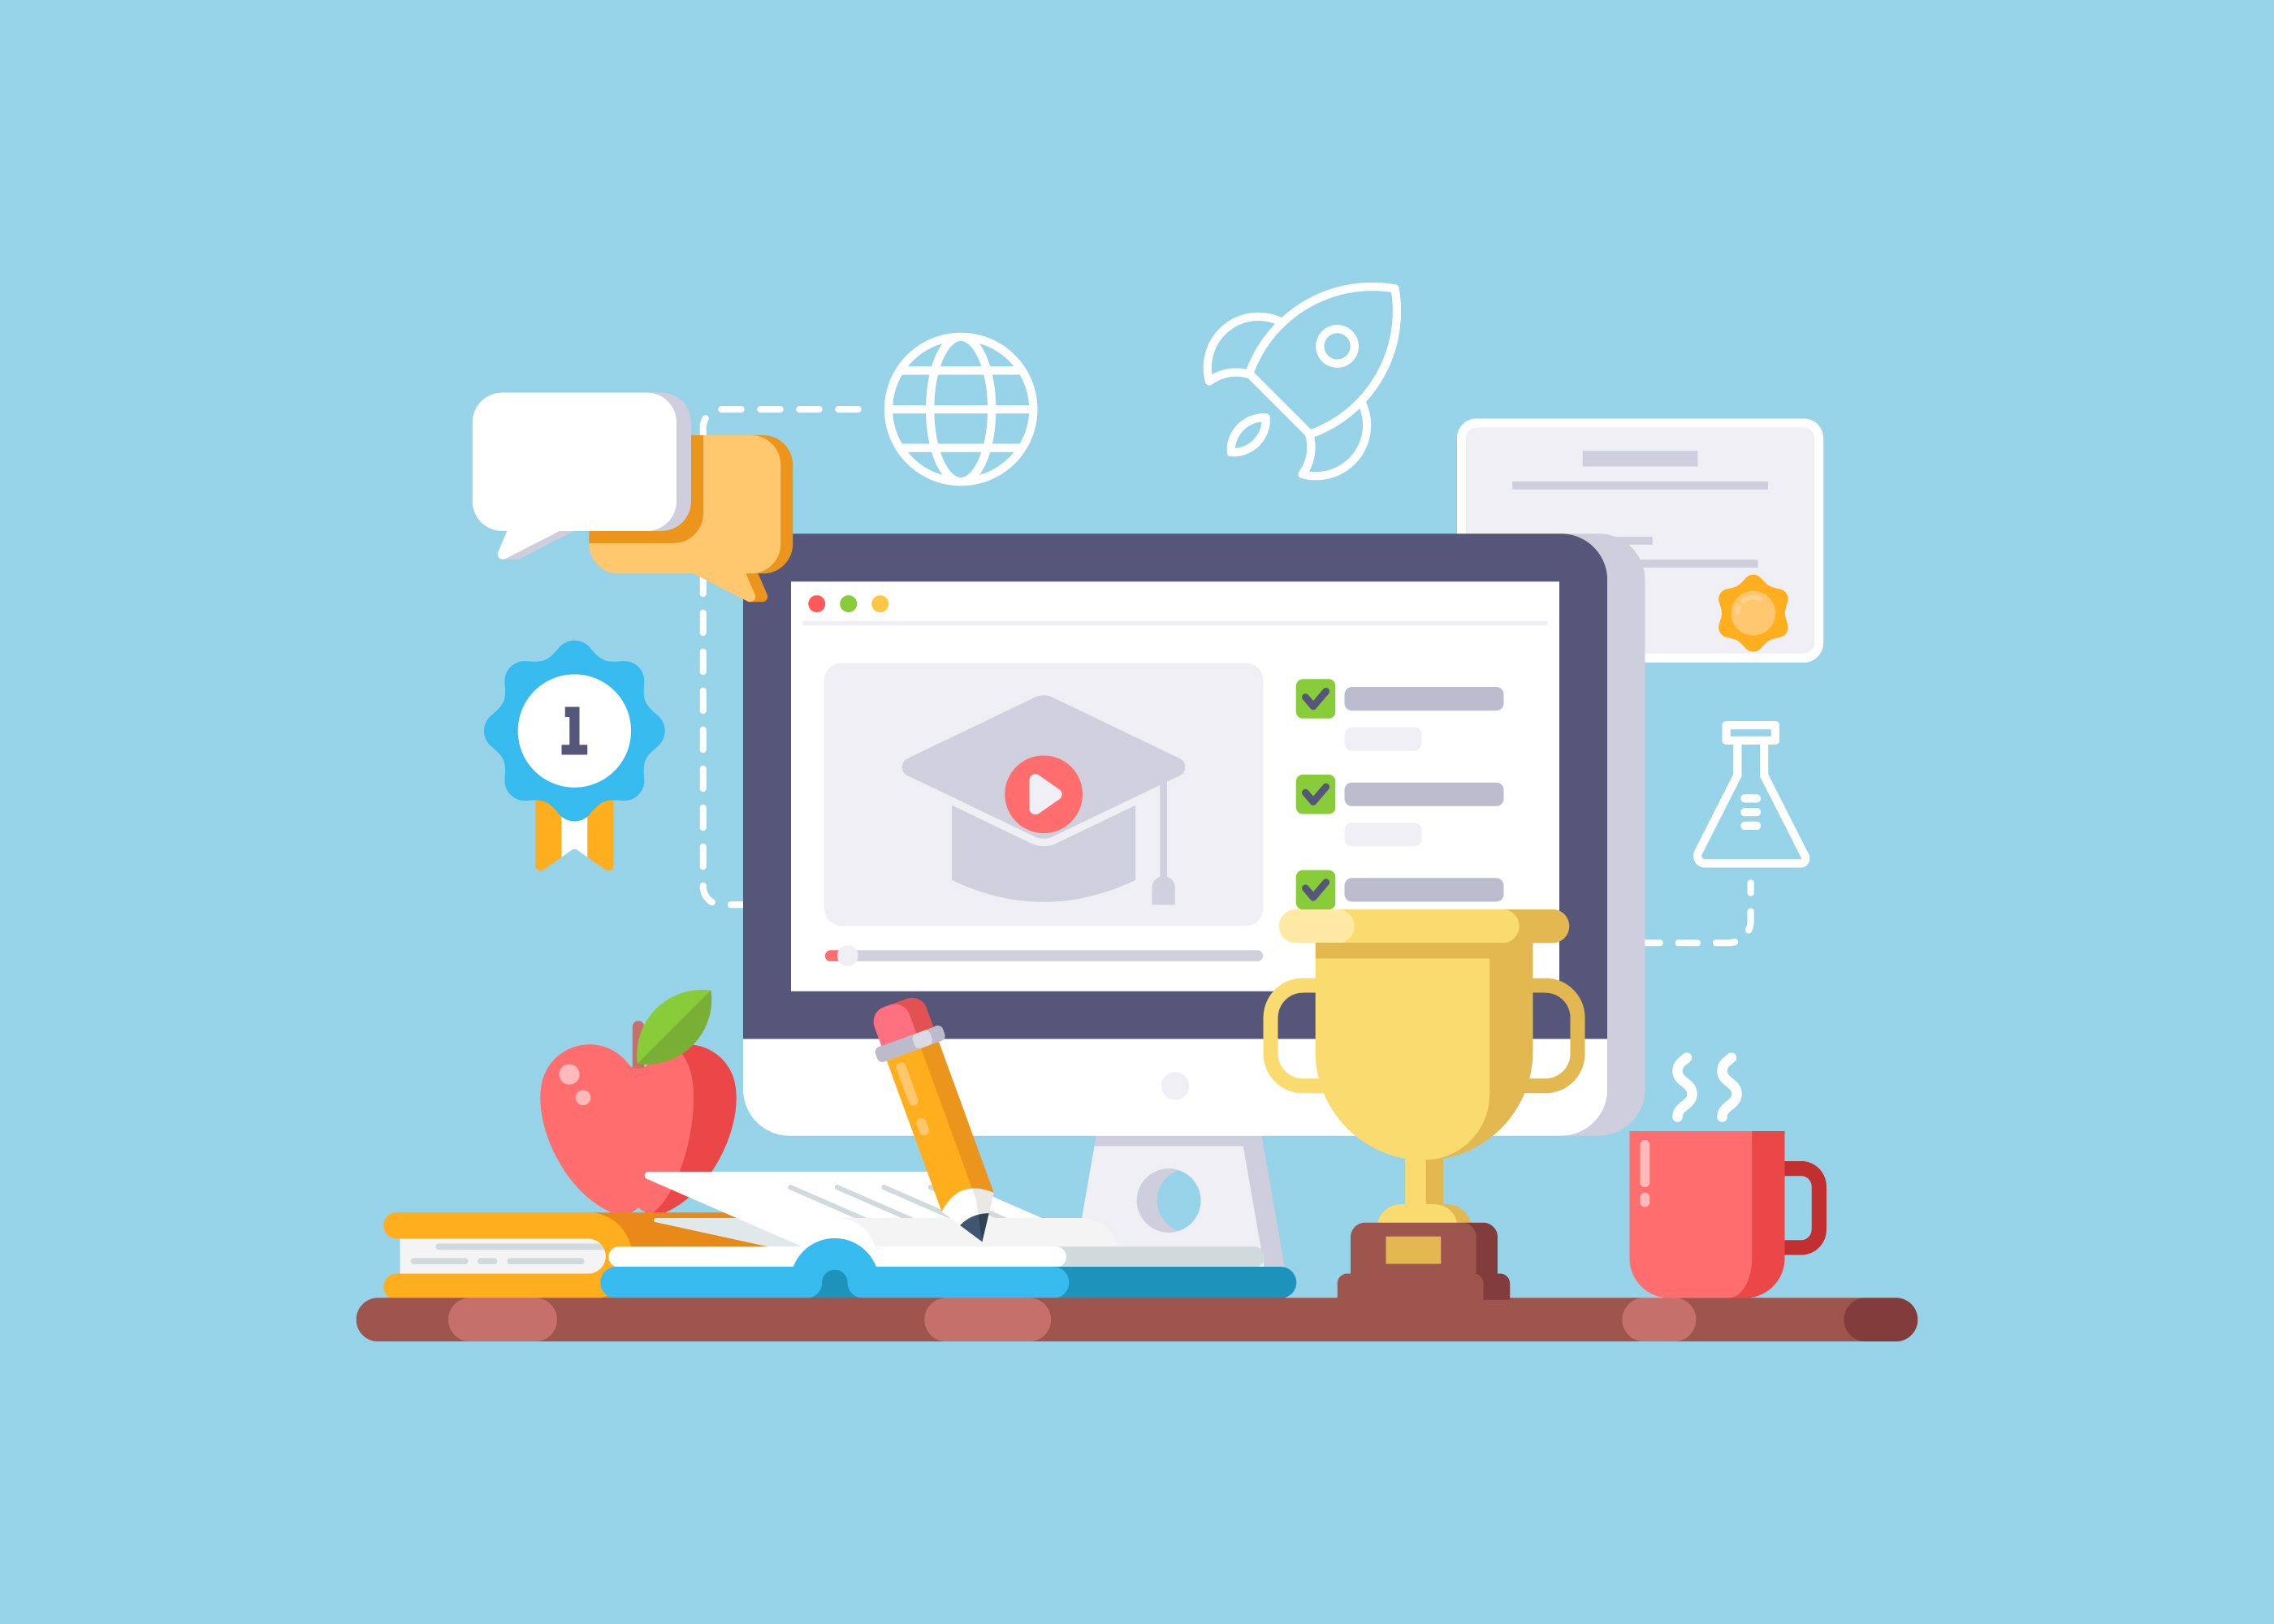 Online Education And E-Learning Illustration - Download Free Vectors,  Clipart Graphics & Vector Art